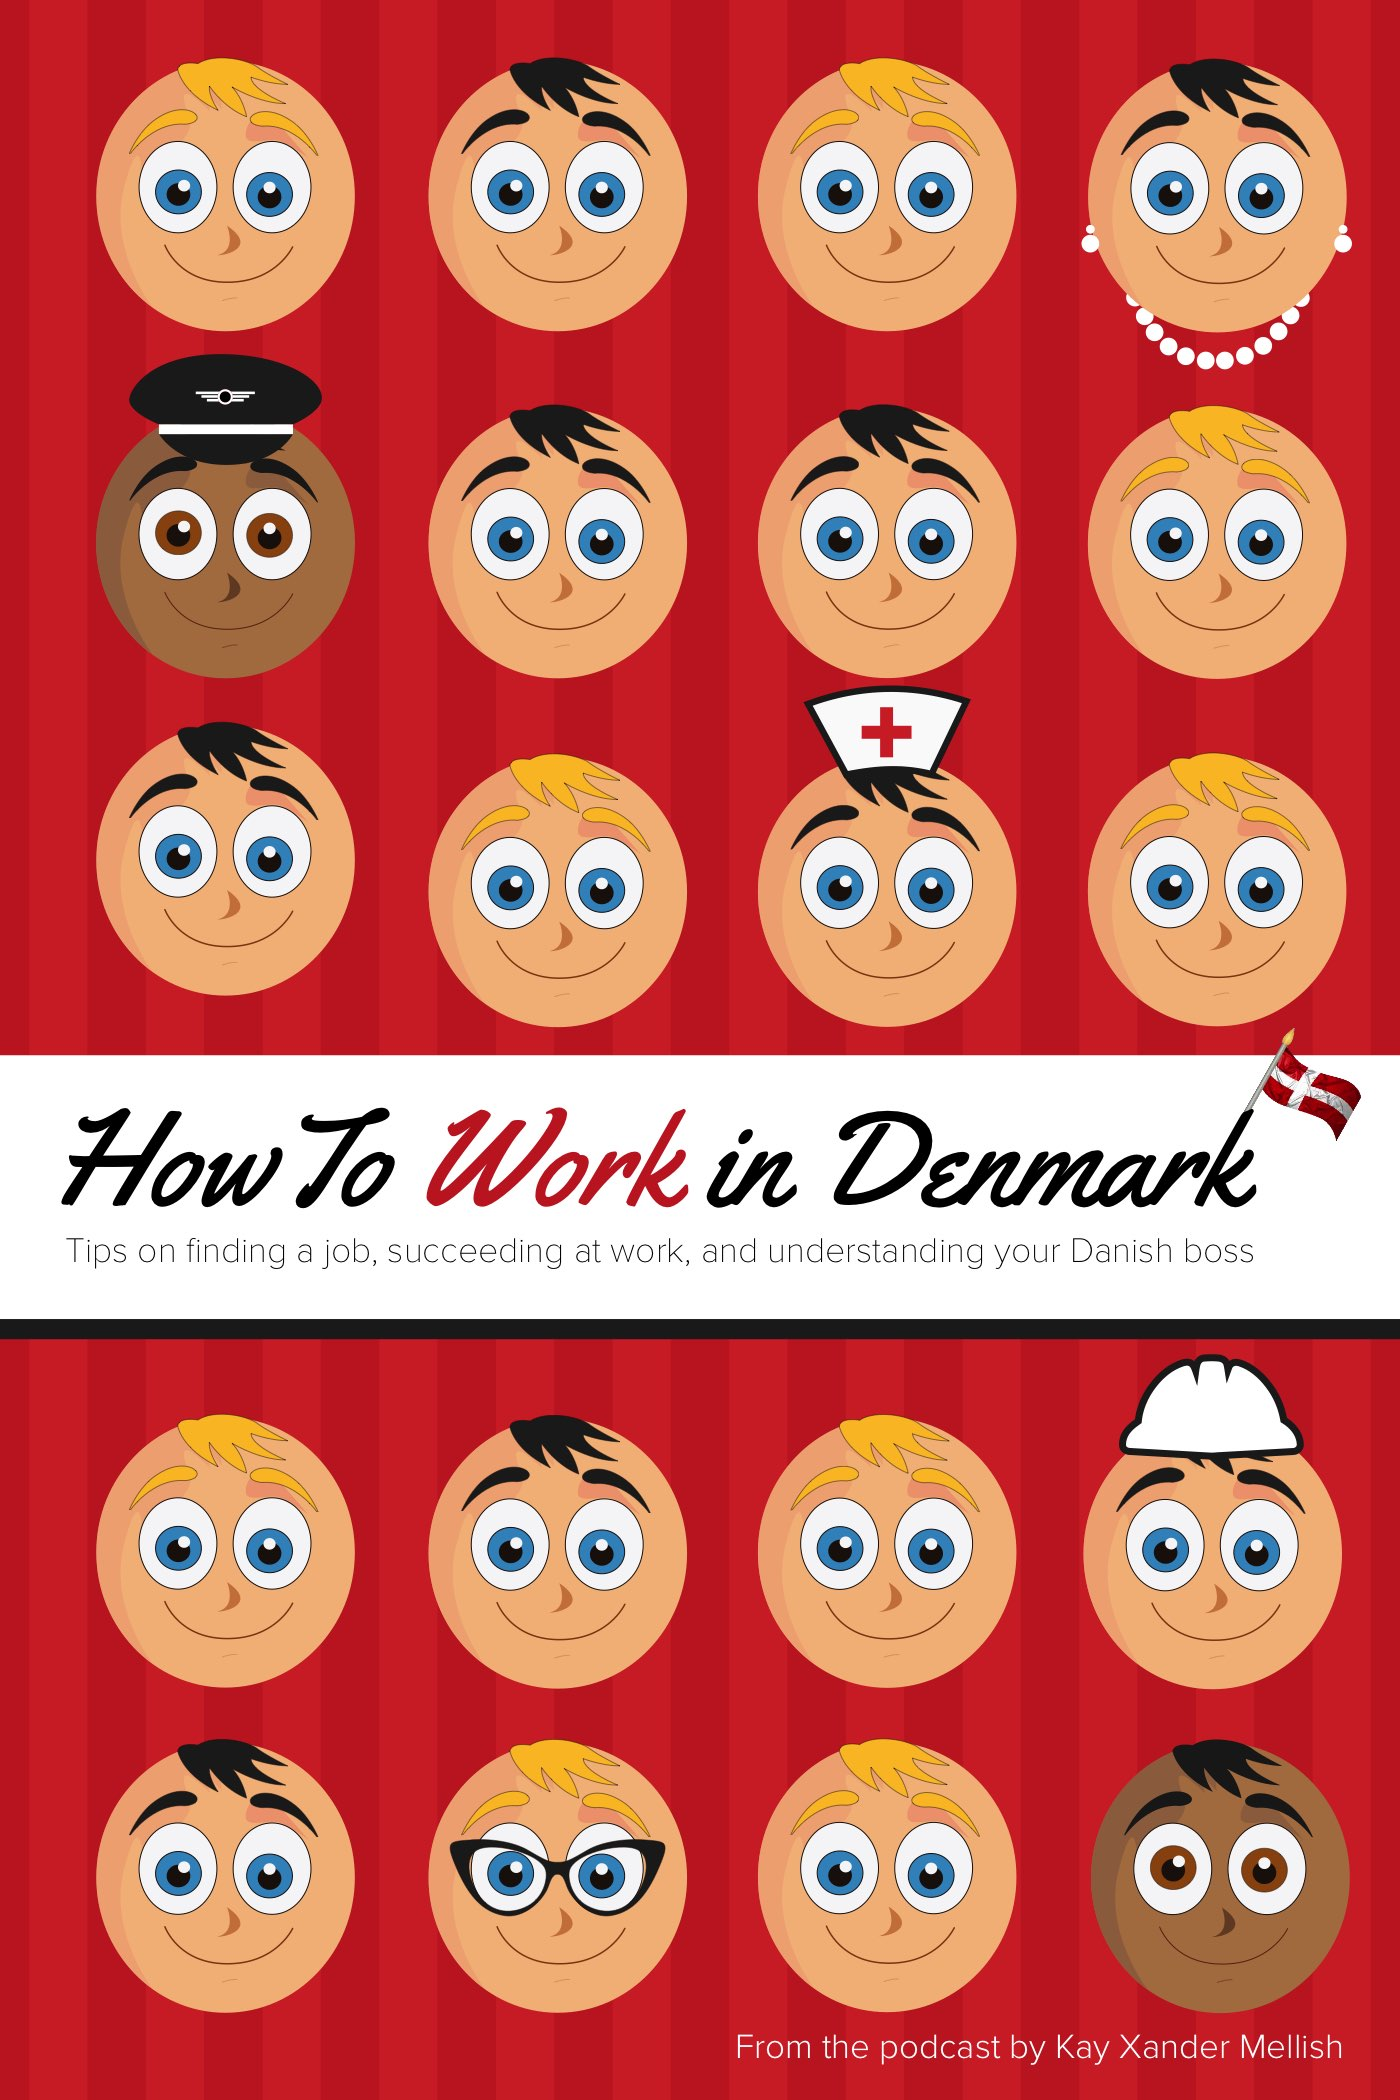 How-to-Work-in-Denmark-cover.jpg